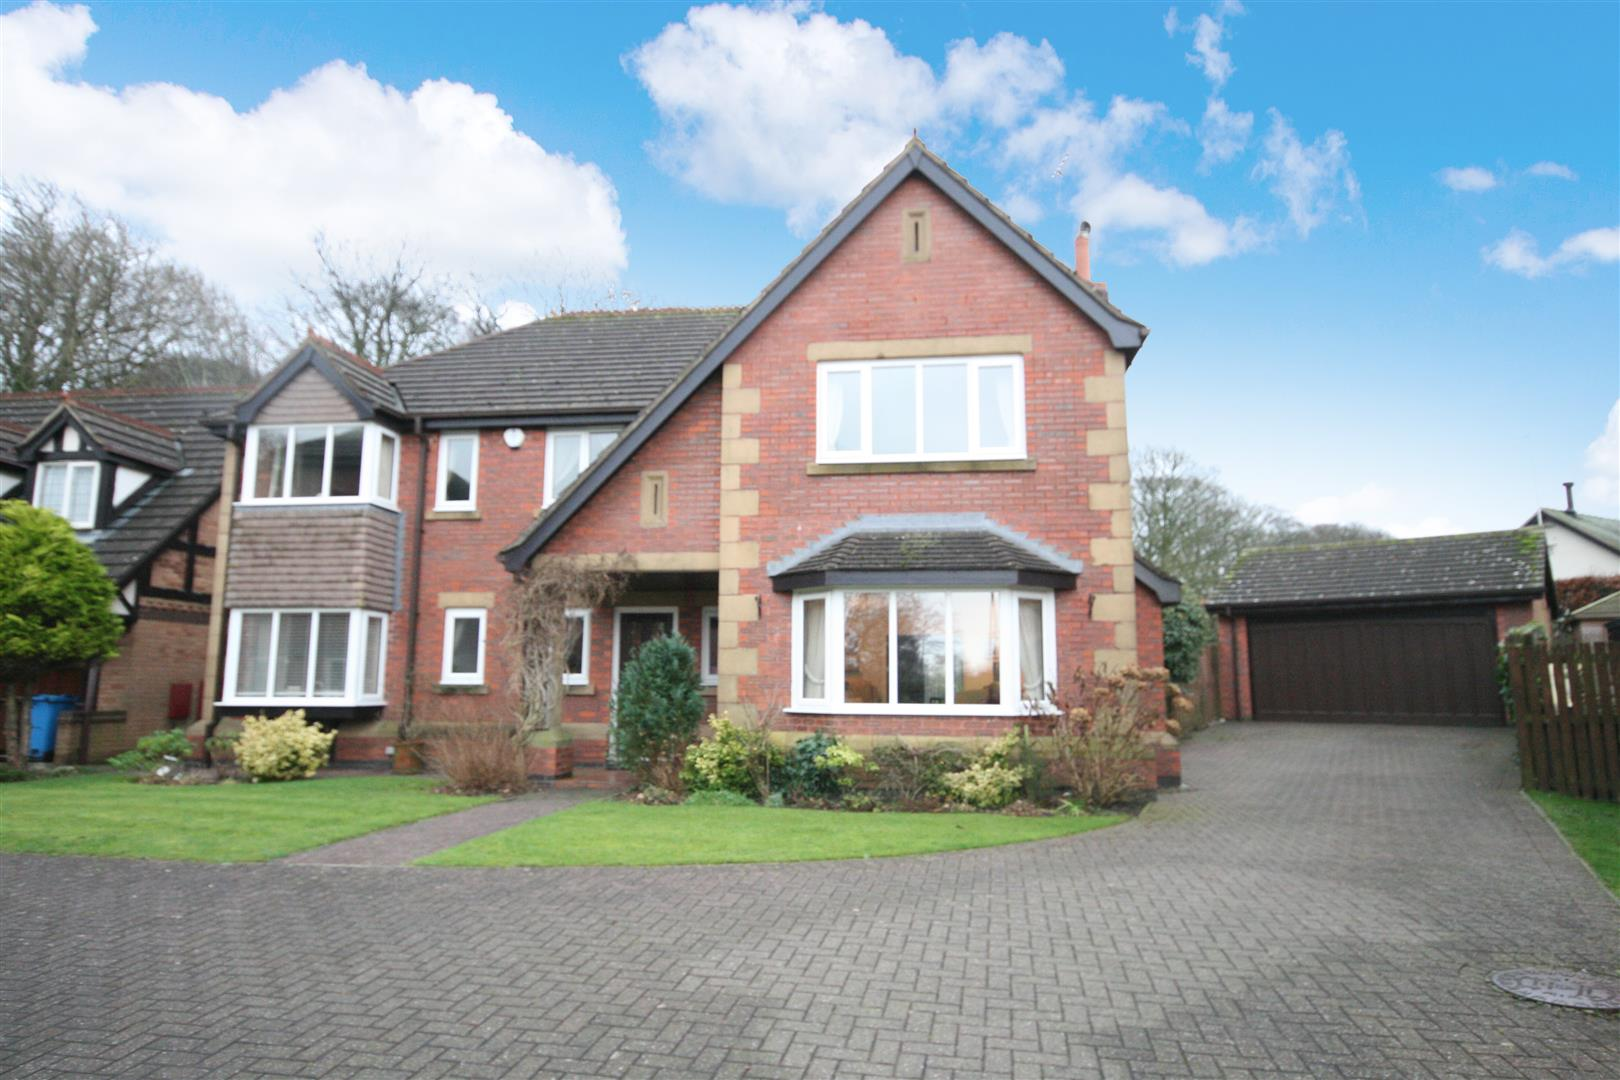 5 Bedrooms Detached House for sale in Vicarage Close, Wrea Green, Preston